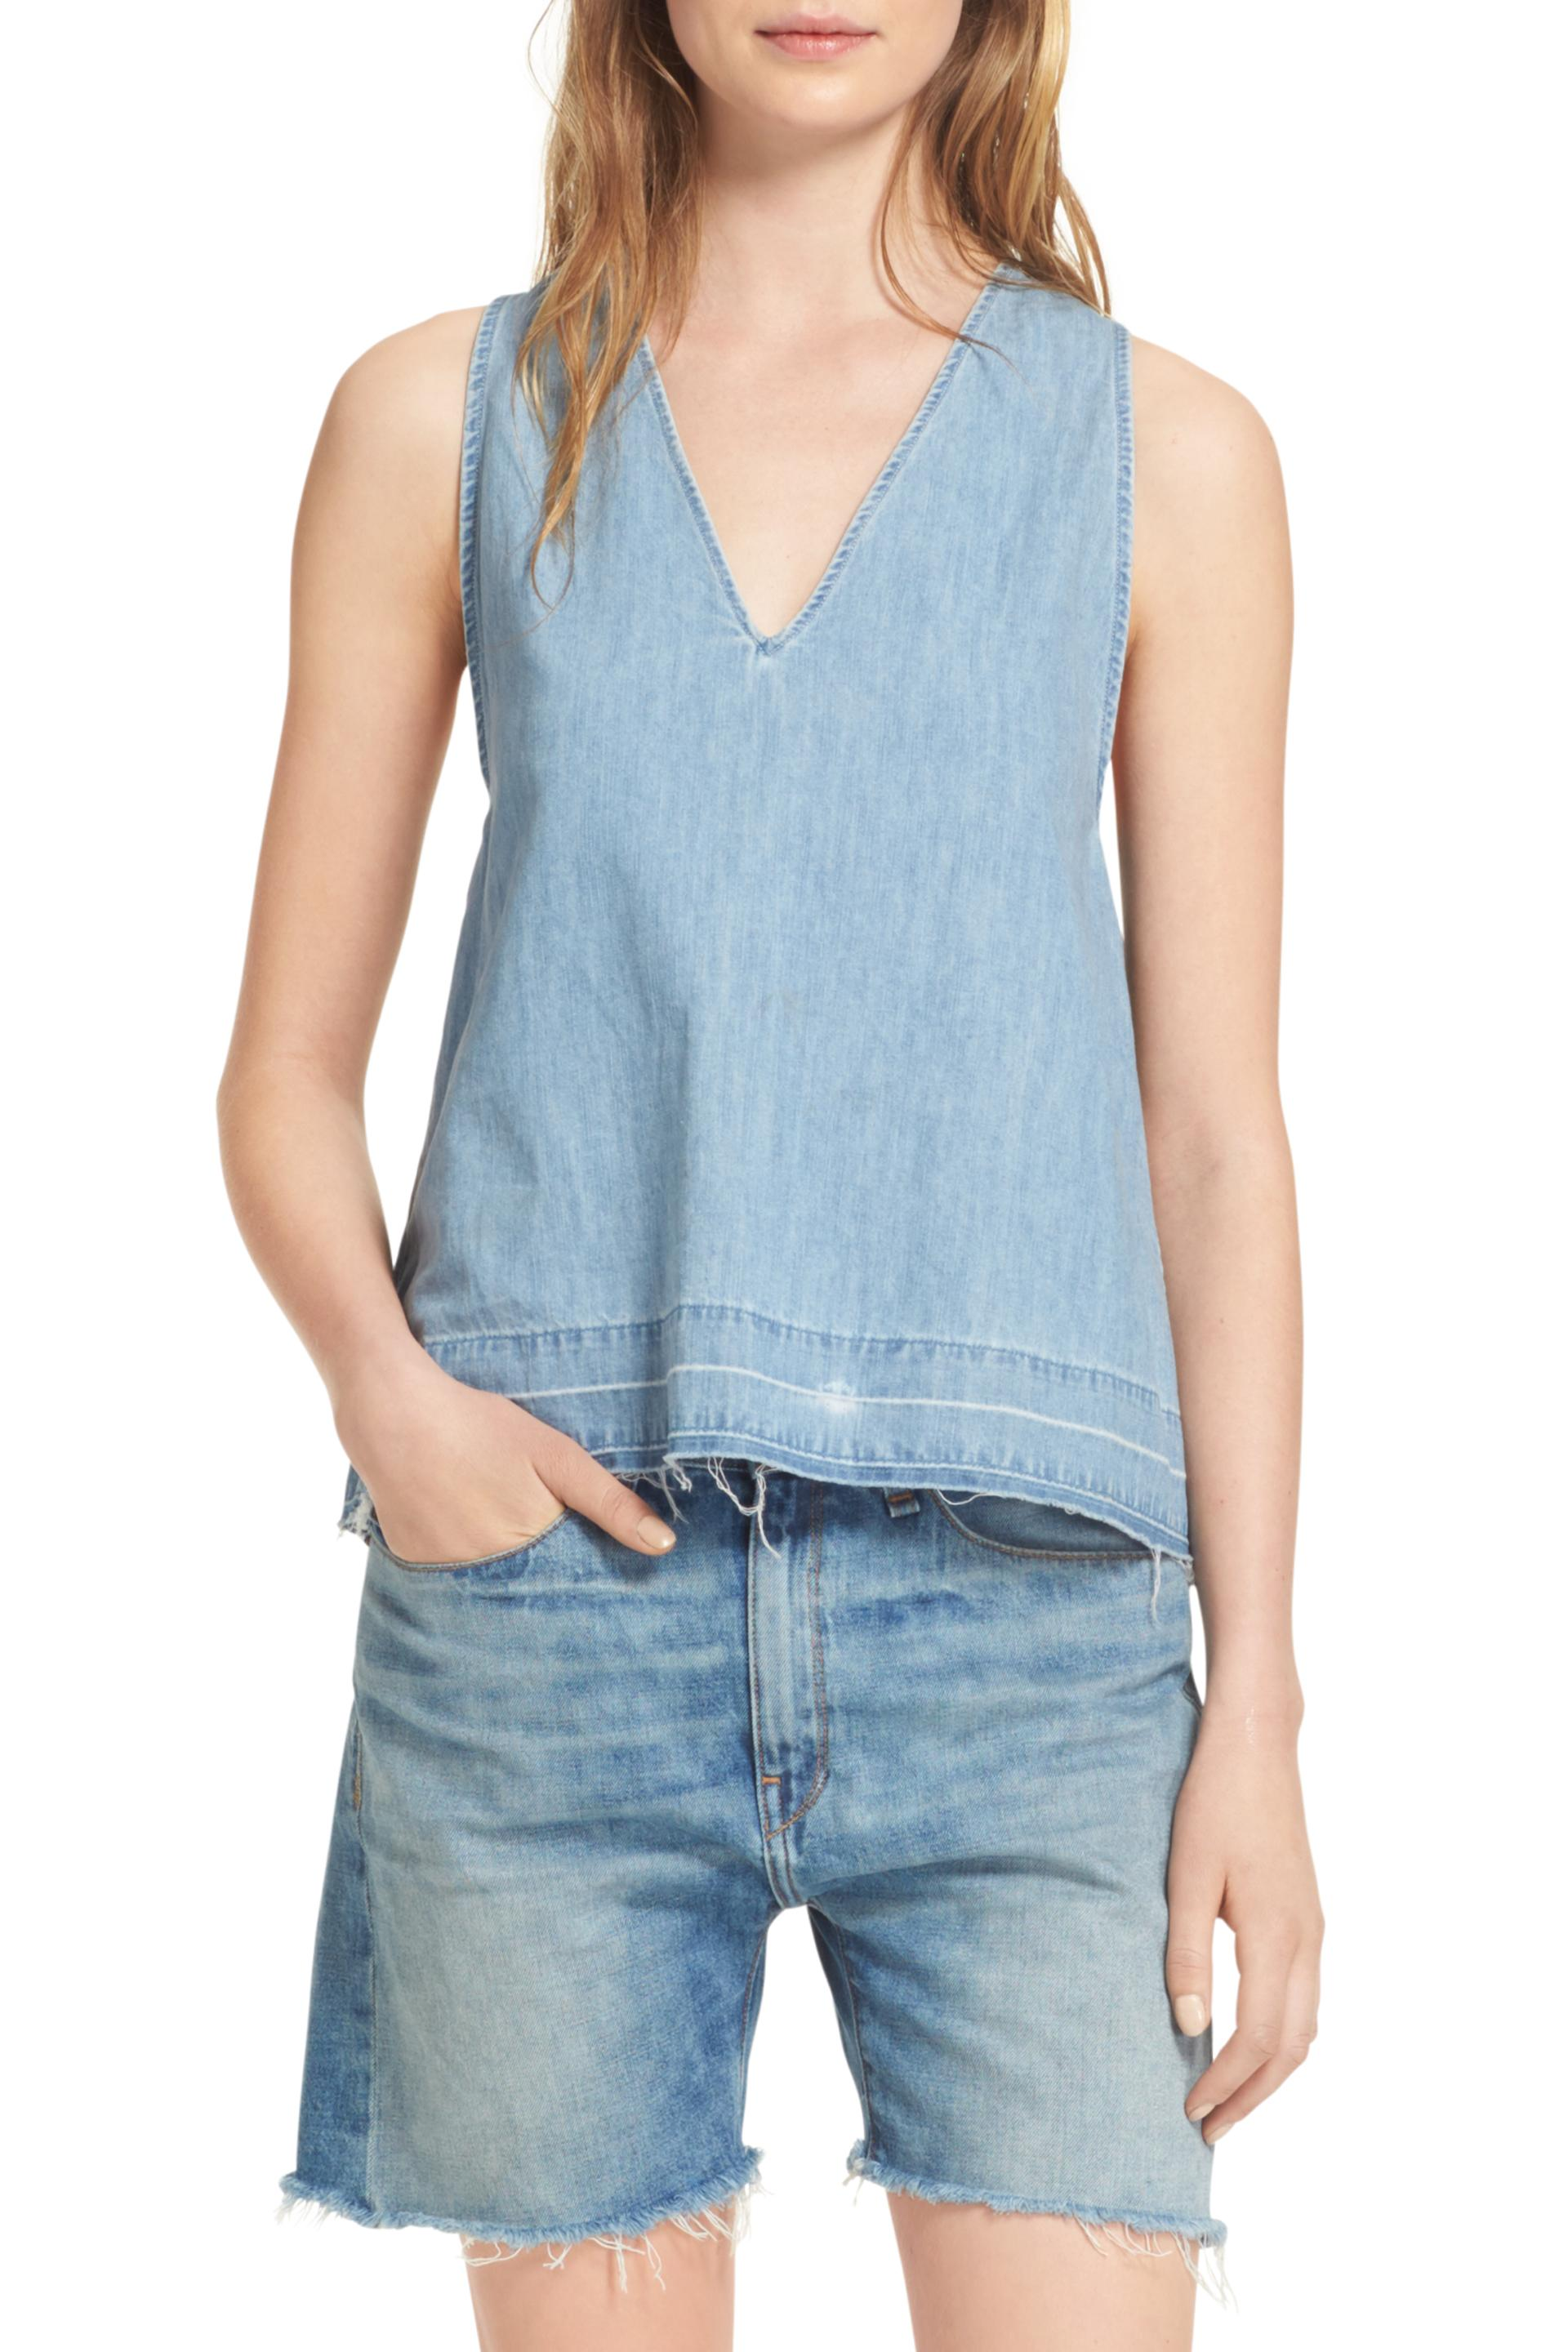 esley c hem draped from drapes women scmpnls s sleeveless top shoulder to approximately clothings blouses womens p